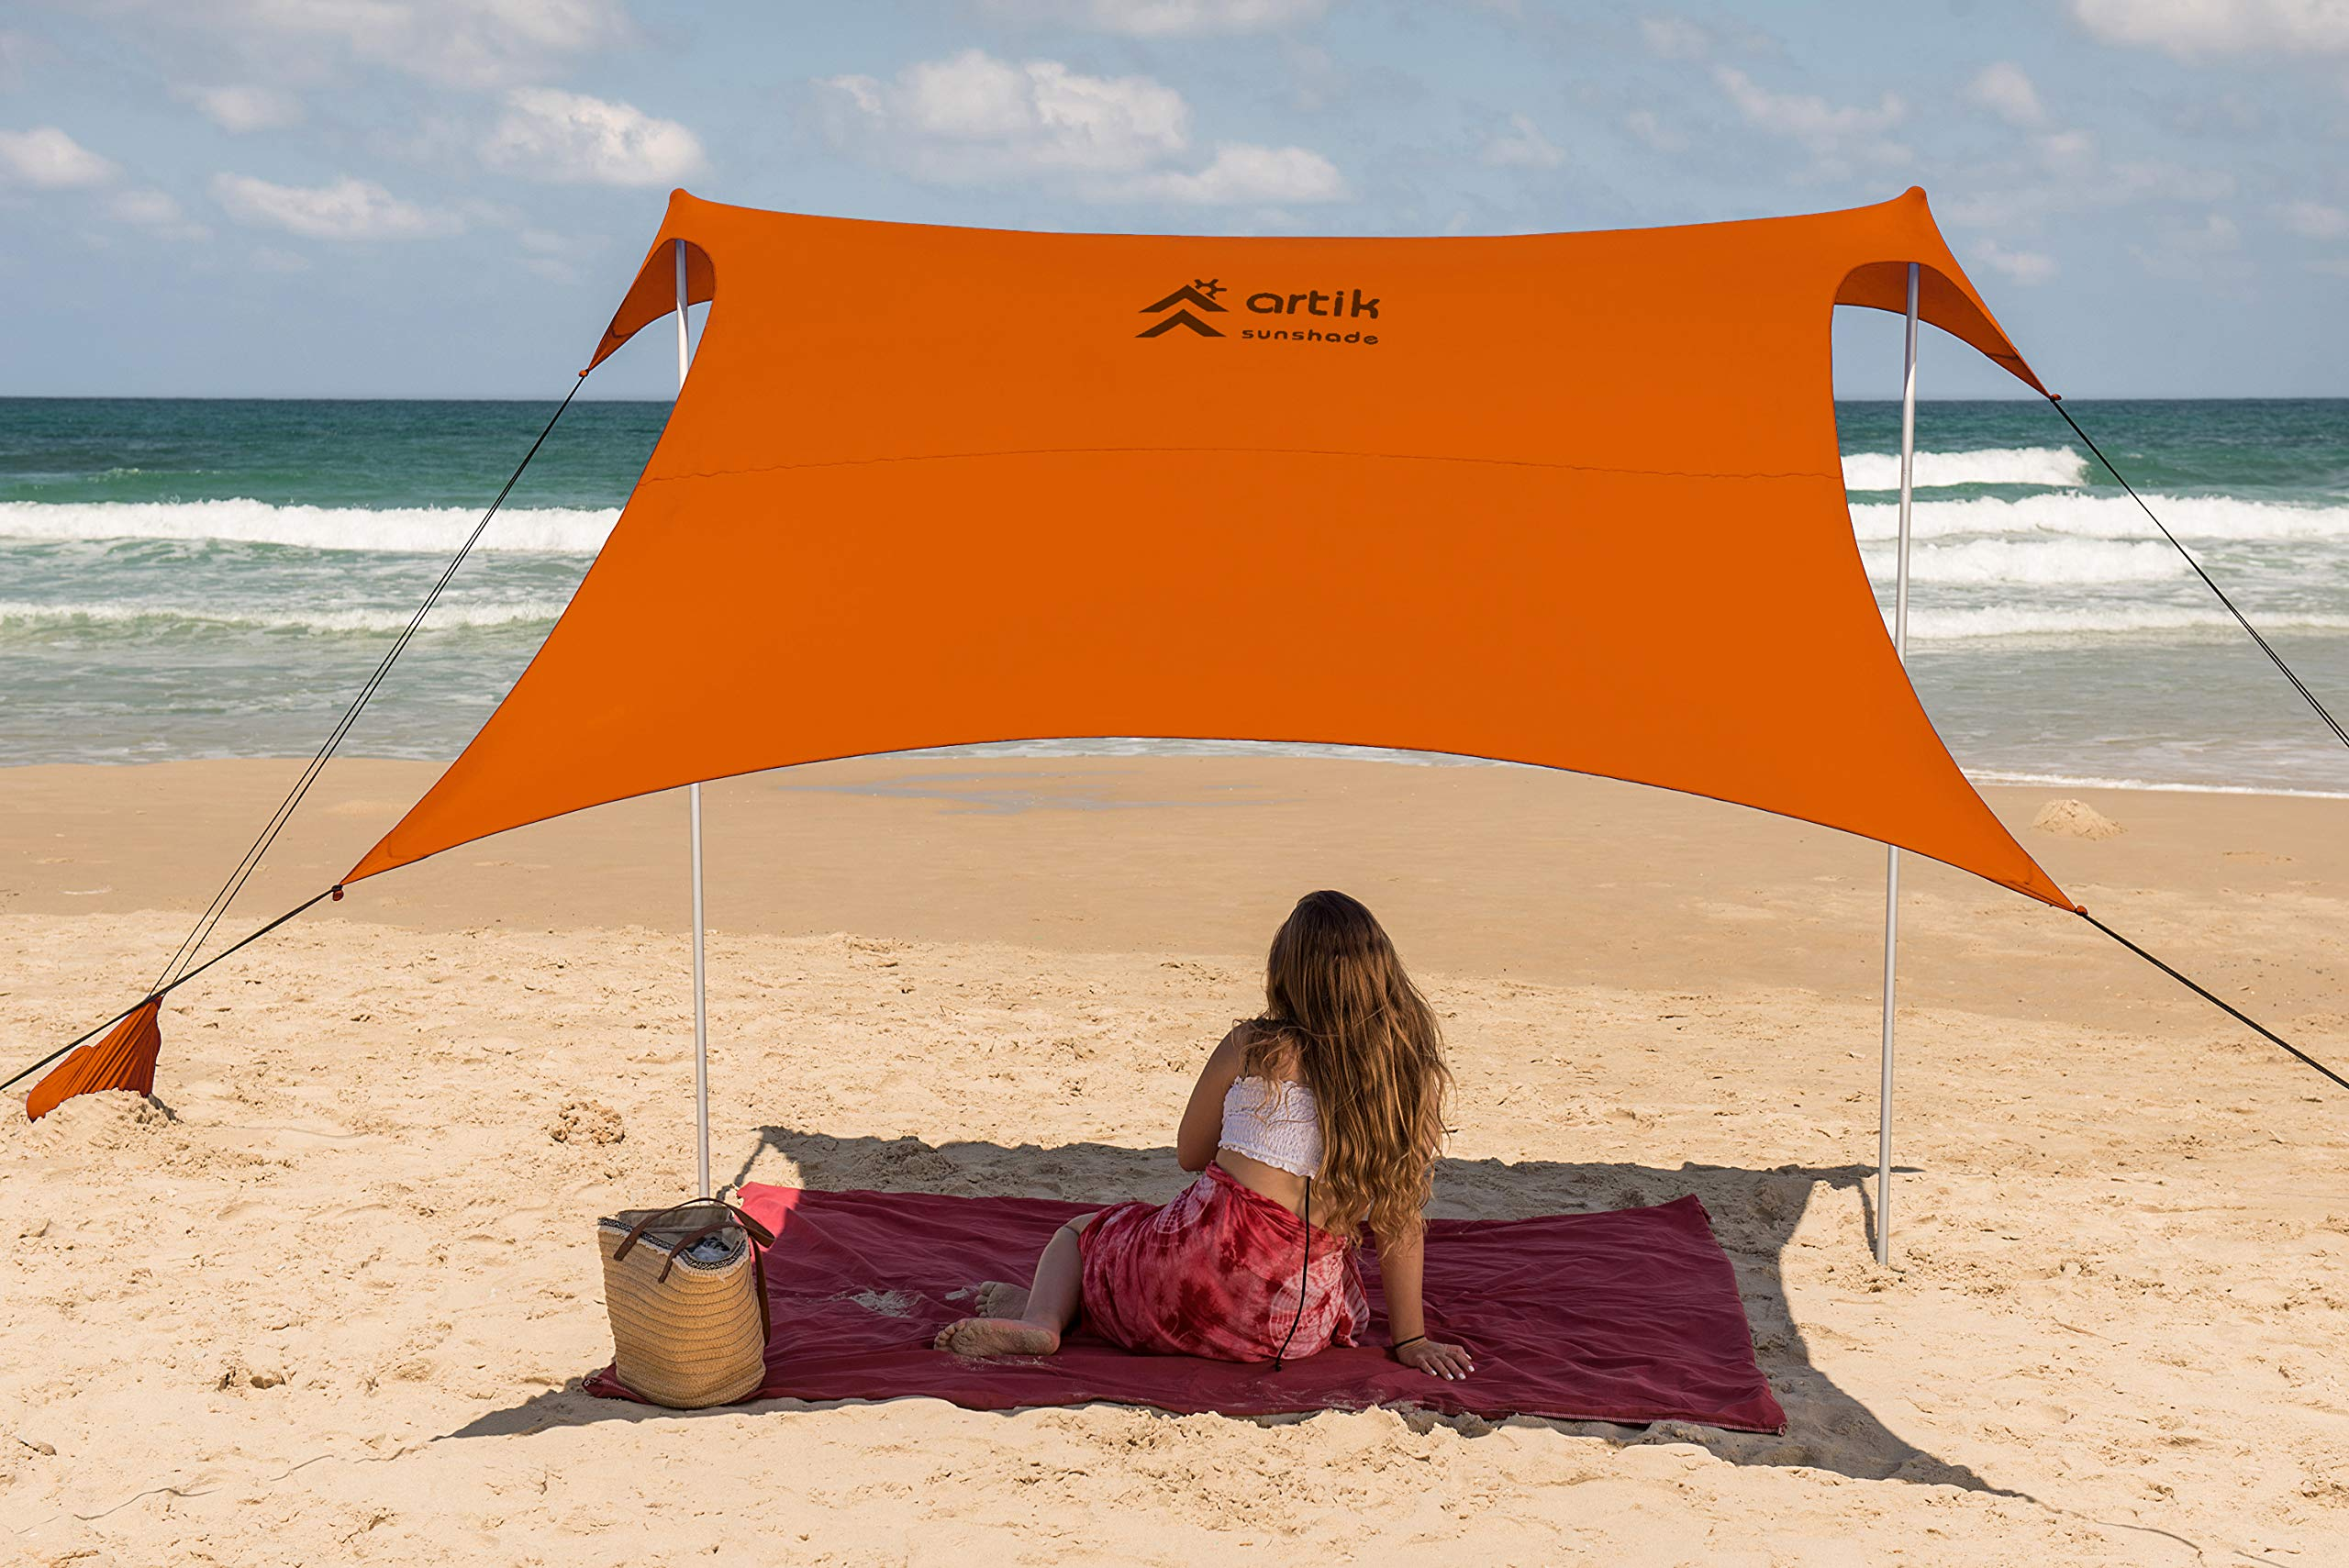 Family Beach Sunshade, with Sandbag Anchors, Simple & Versatile. SPF50, Lycra SunShelter for The Beach,Camping and Outdoors. (Orange pop, Large) by ARTIK SUNSHADE